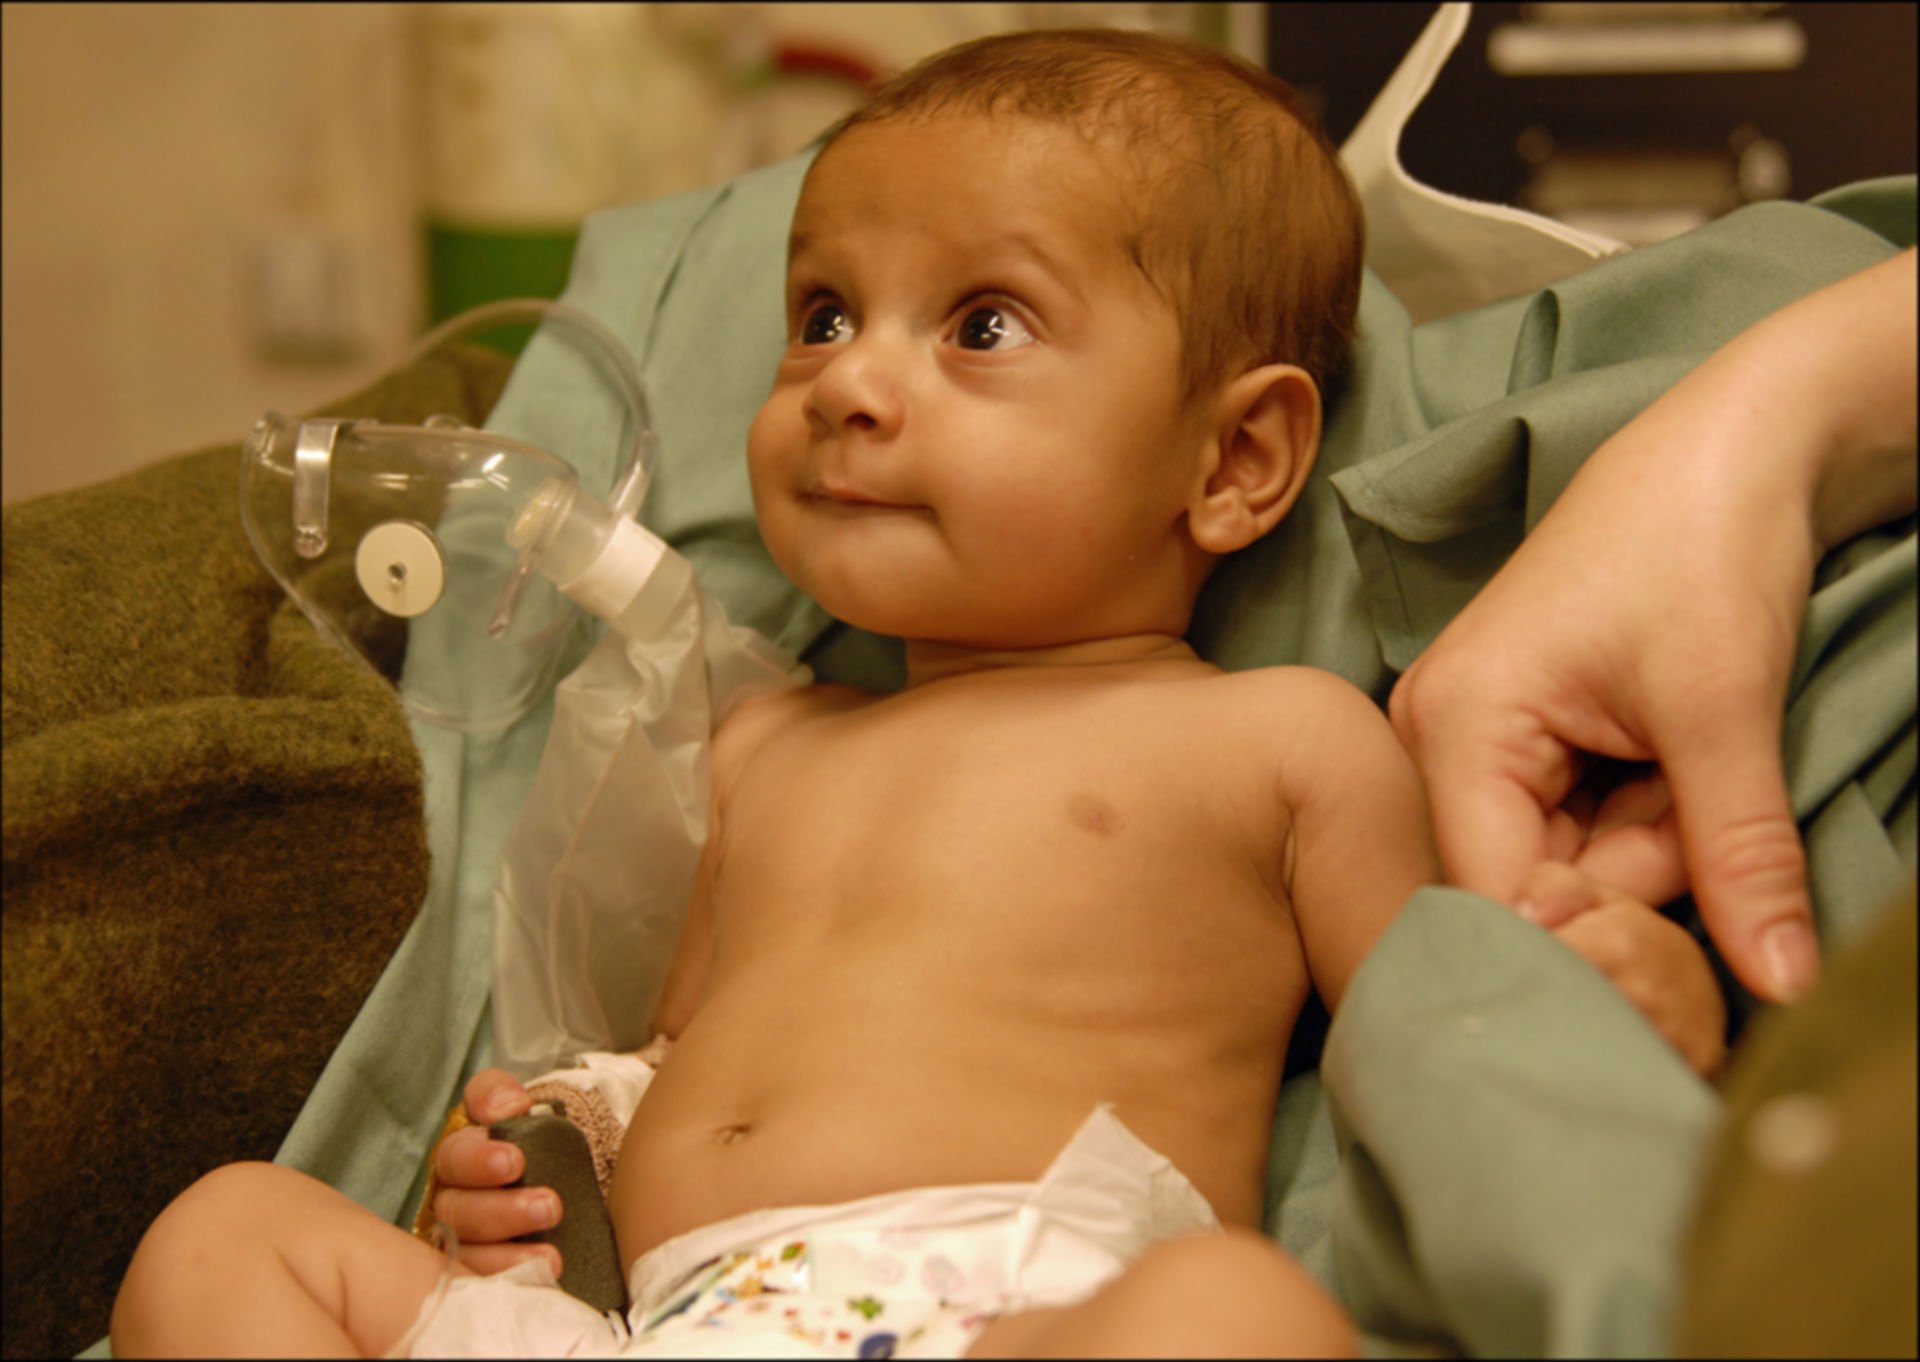 Afghan boy with heart defect